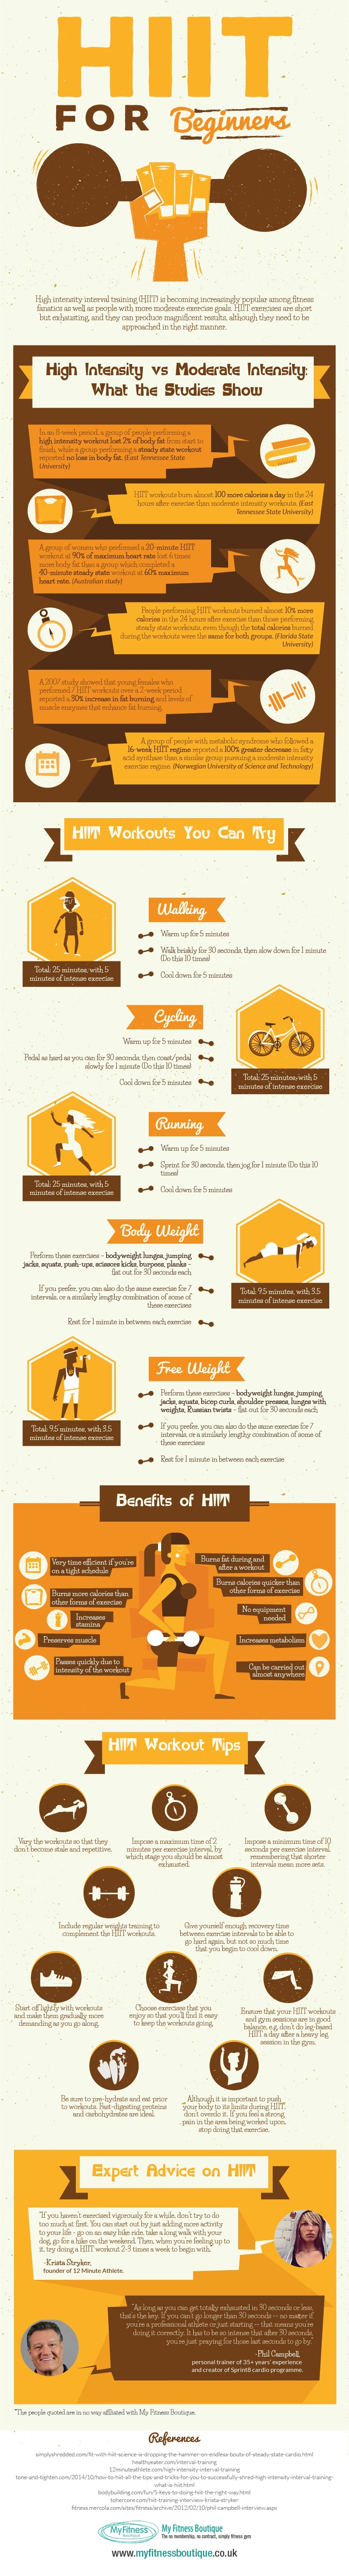 HIIT for Beginners [Infographic]-2